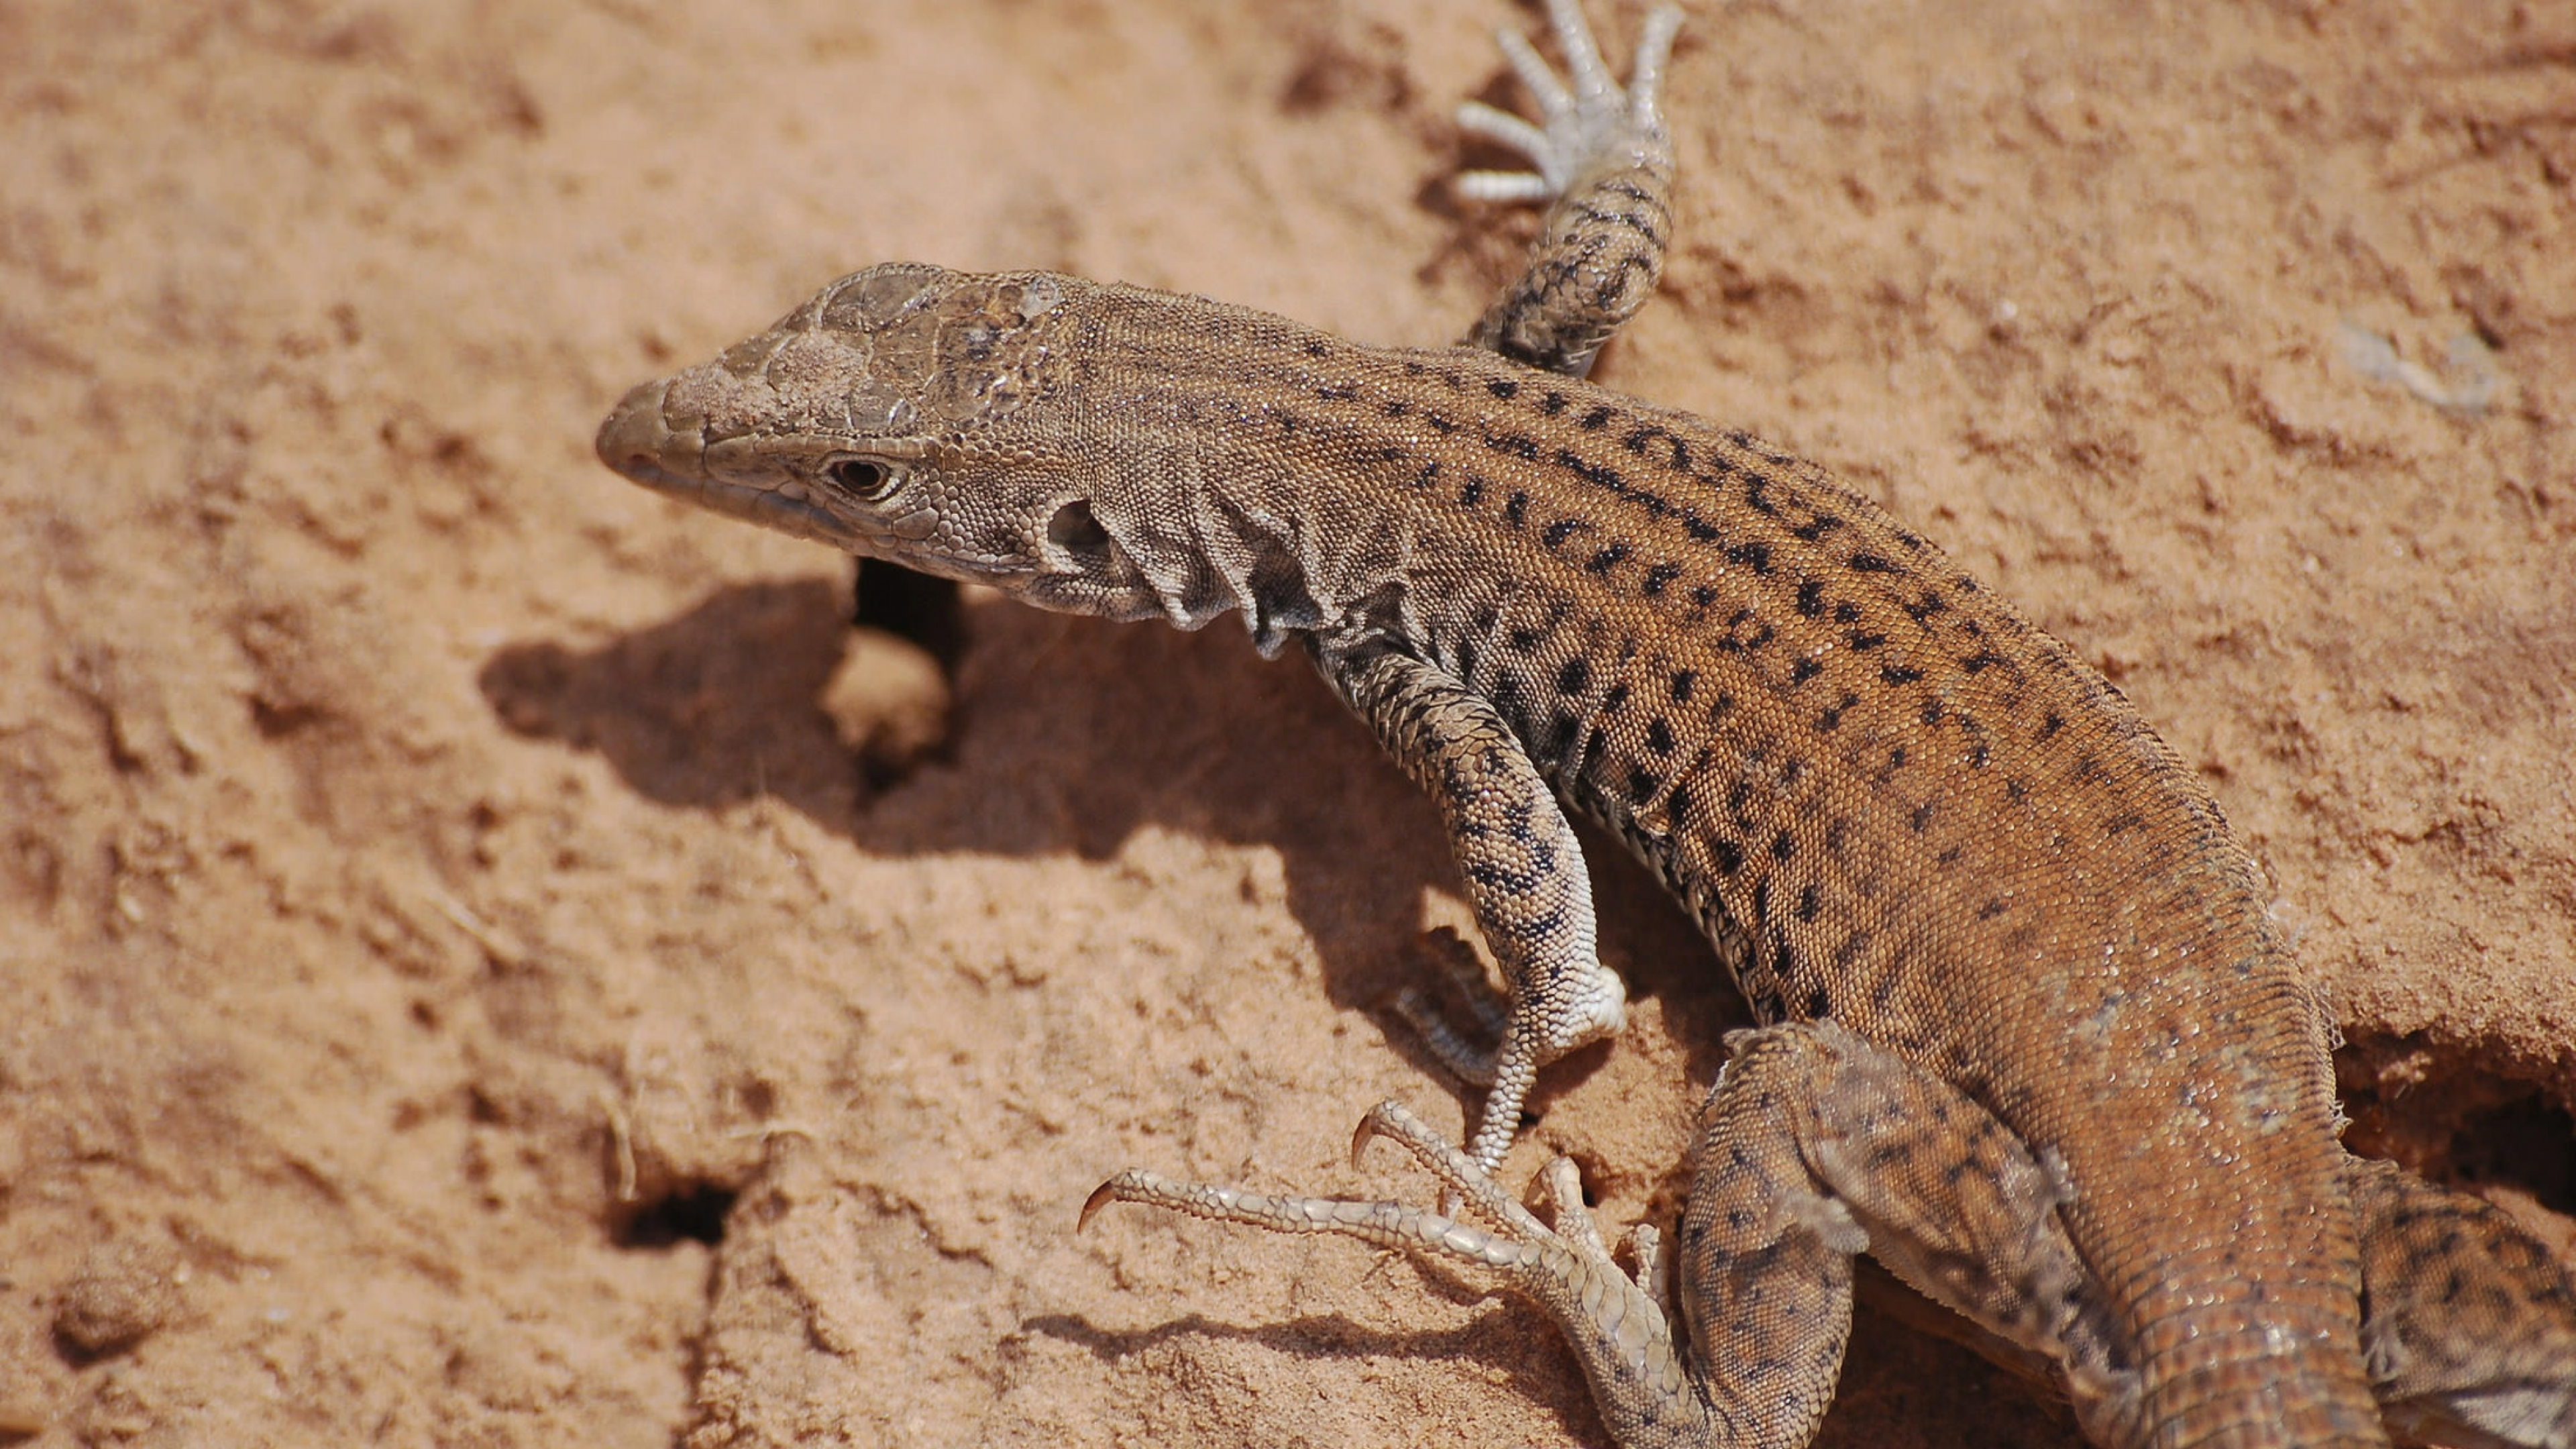 A leopard lizard spotted on the trail